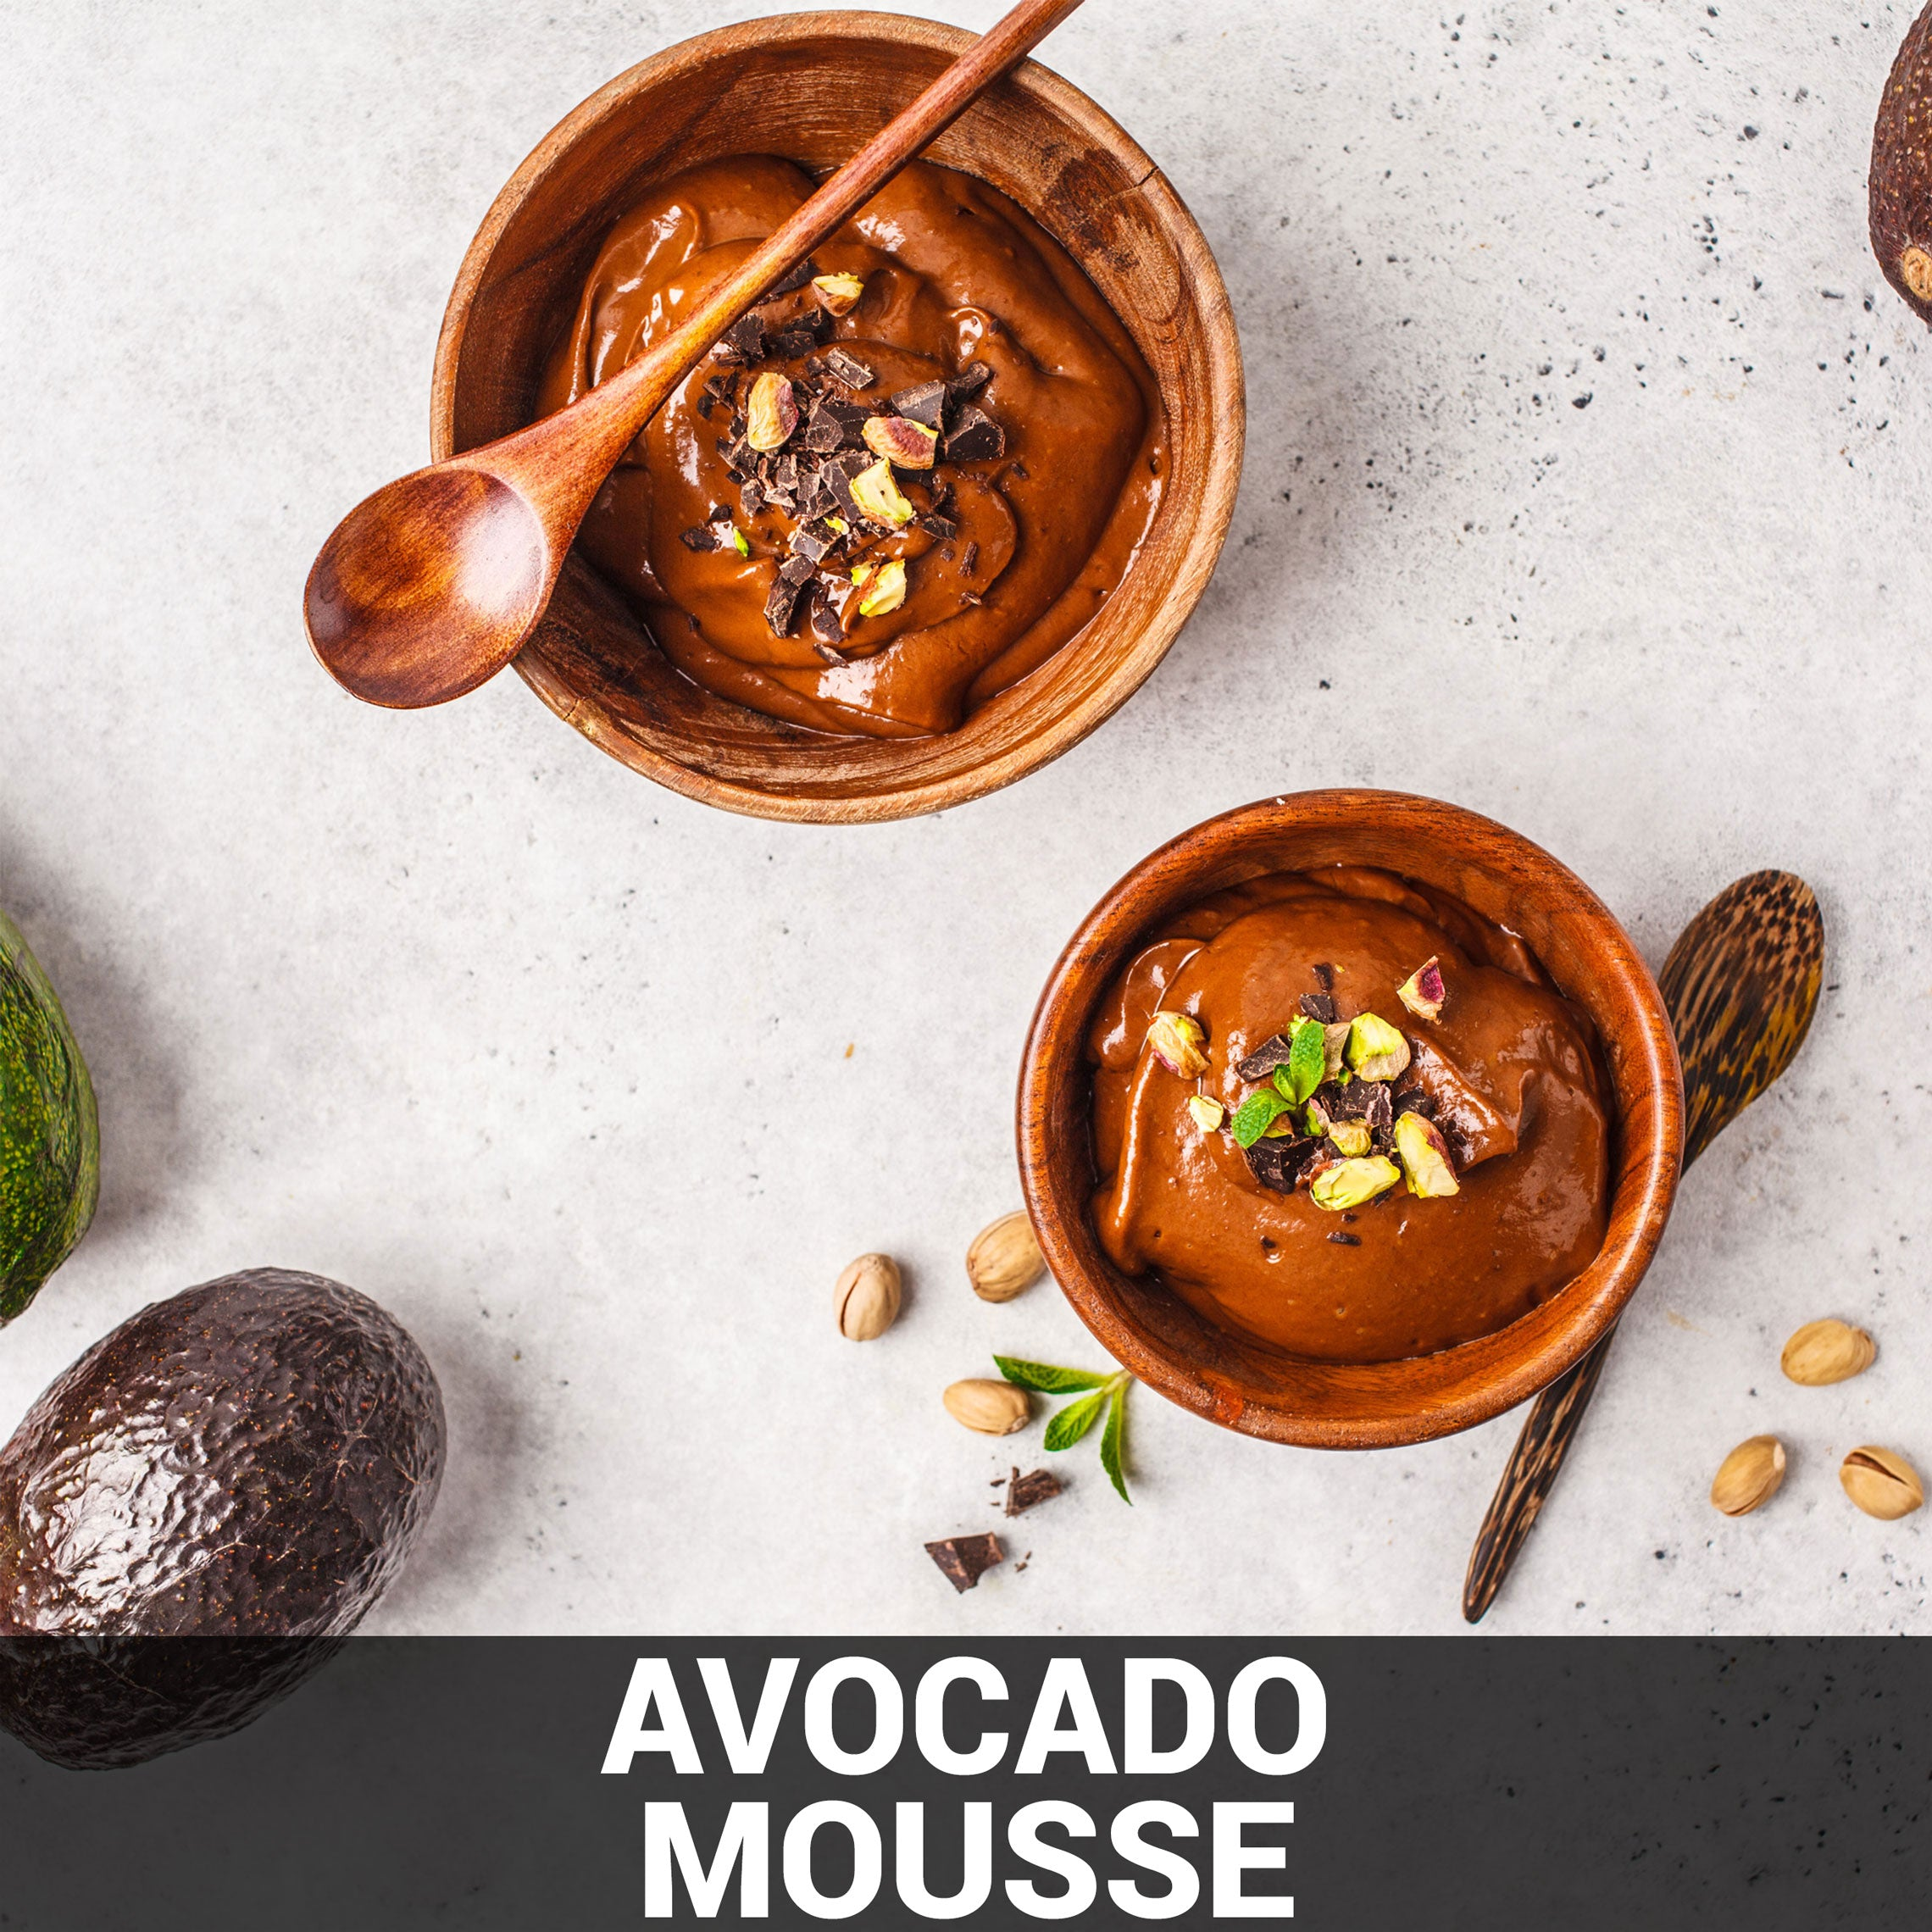 Avocado Mousse Recipe - Foods Alive